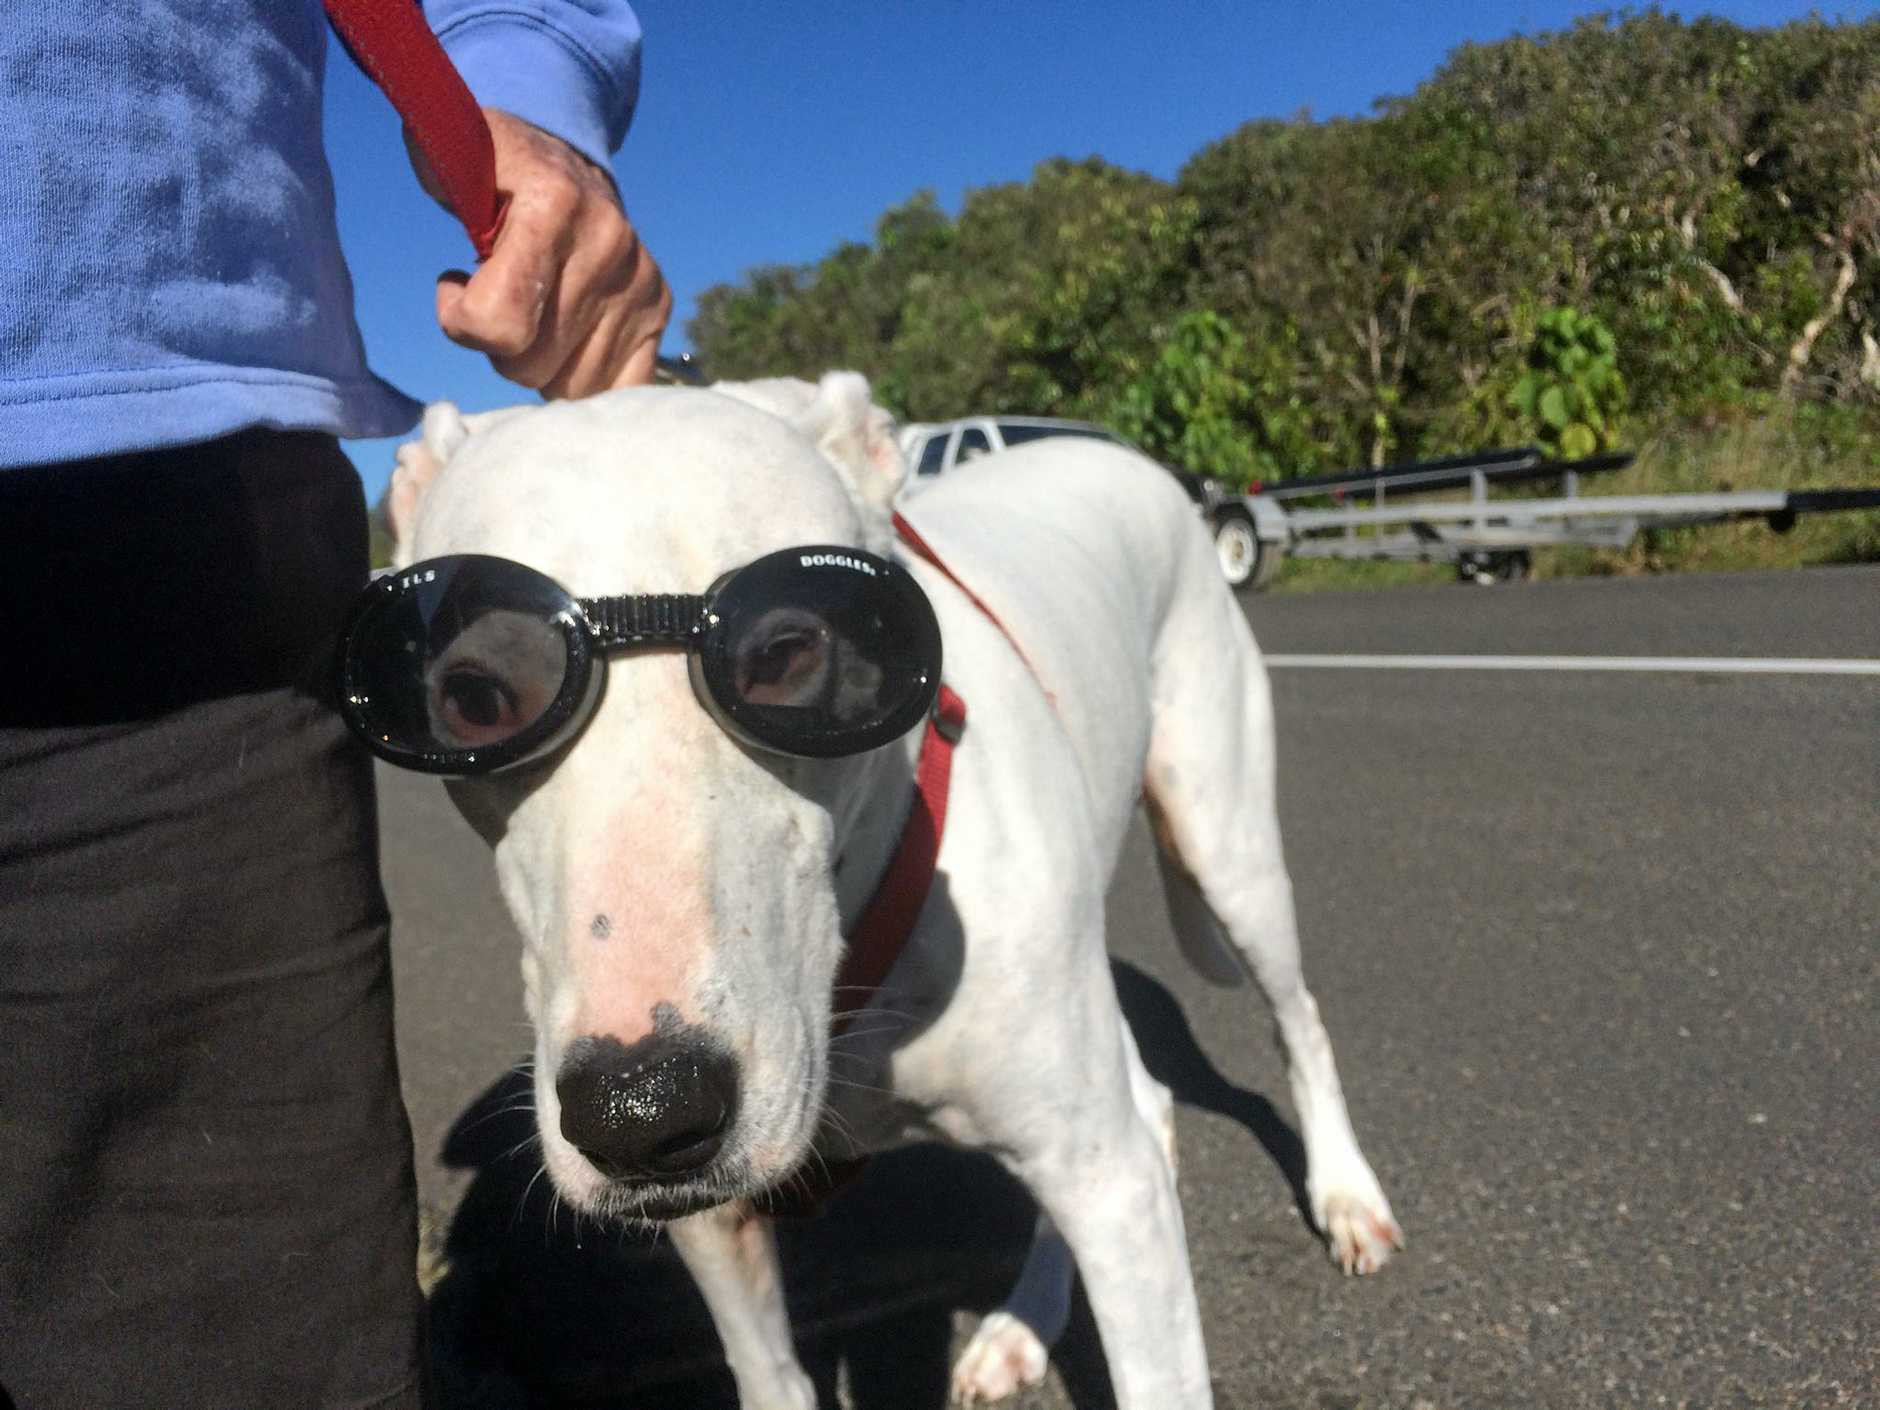 Lucy, the rescue dog, with her designer sunnies.